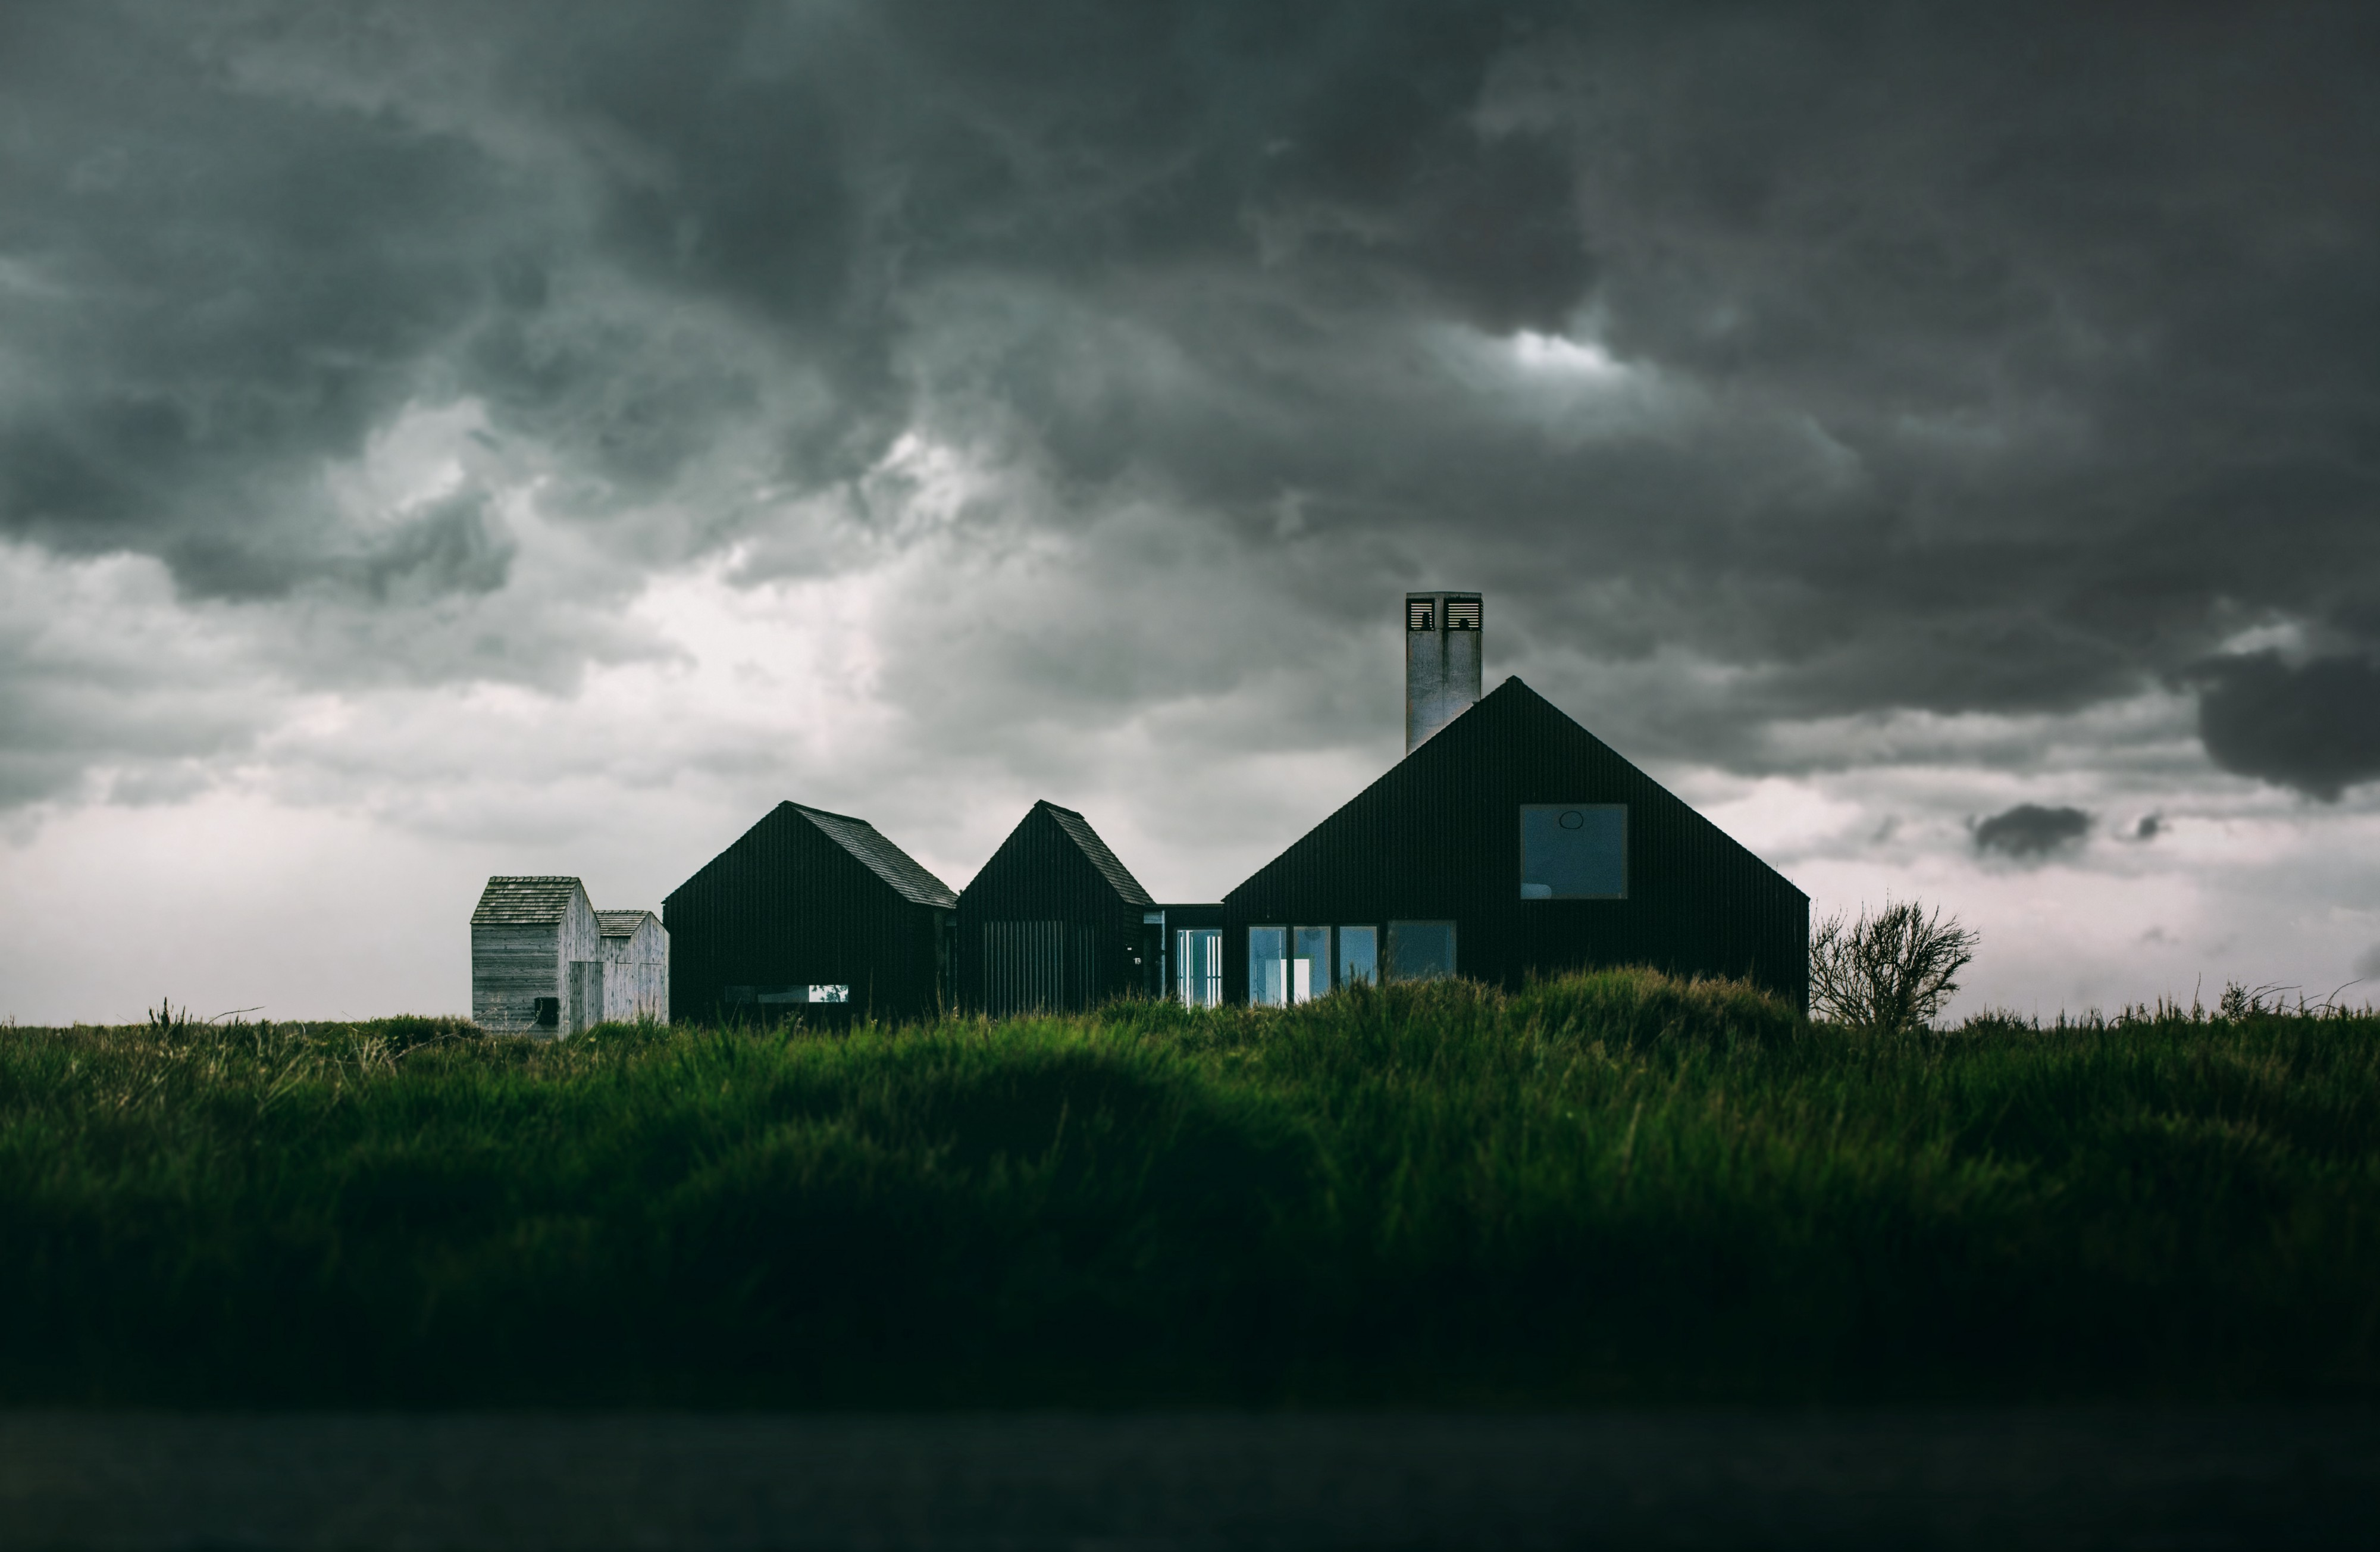 houses in a stormy landscape